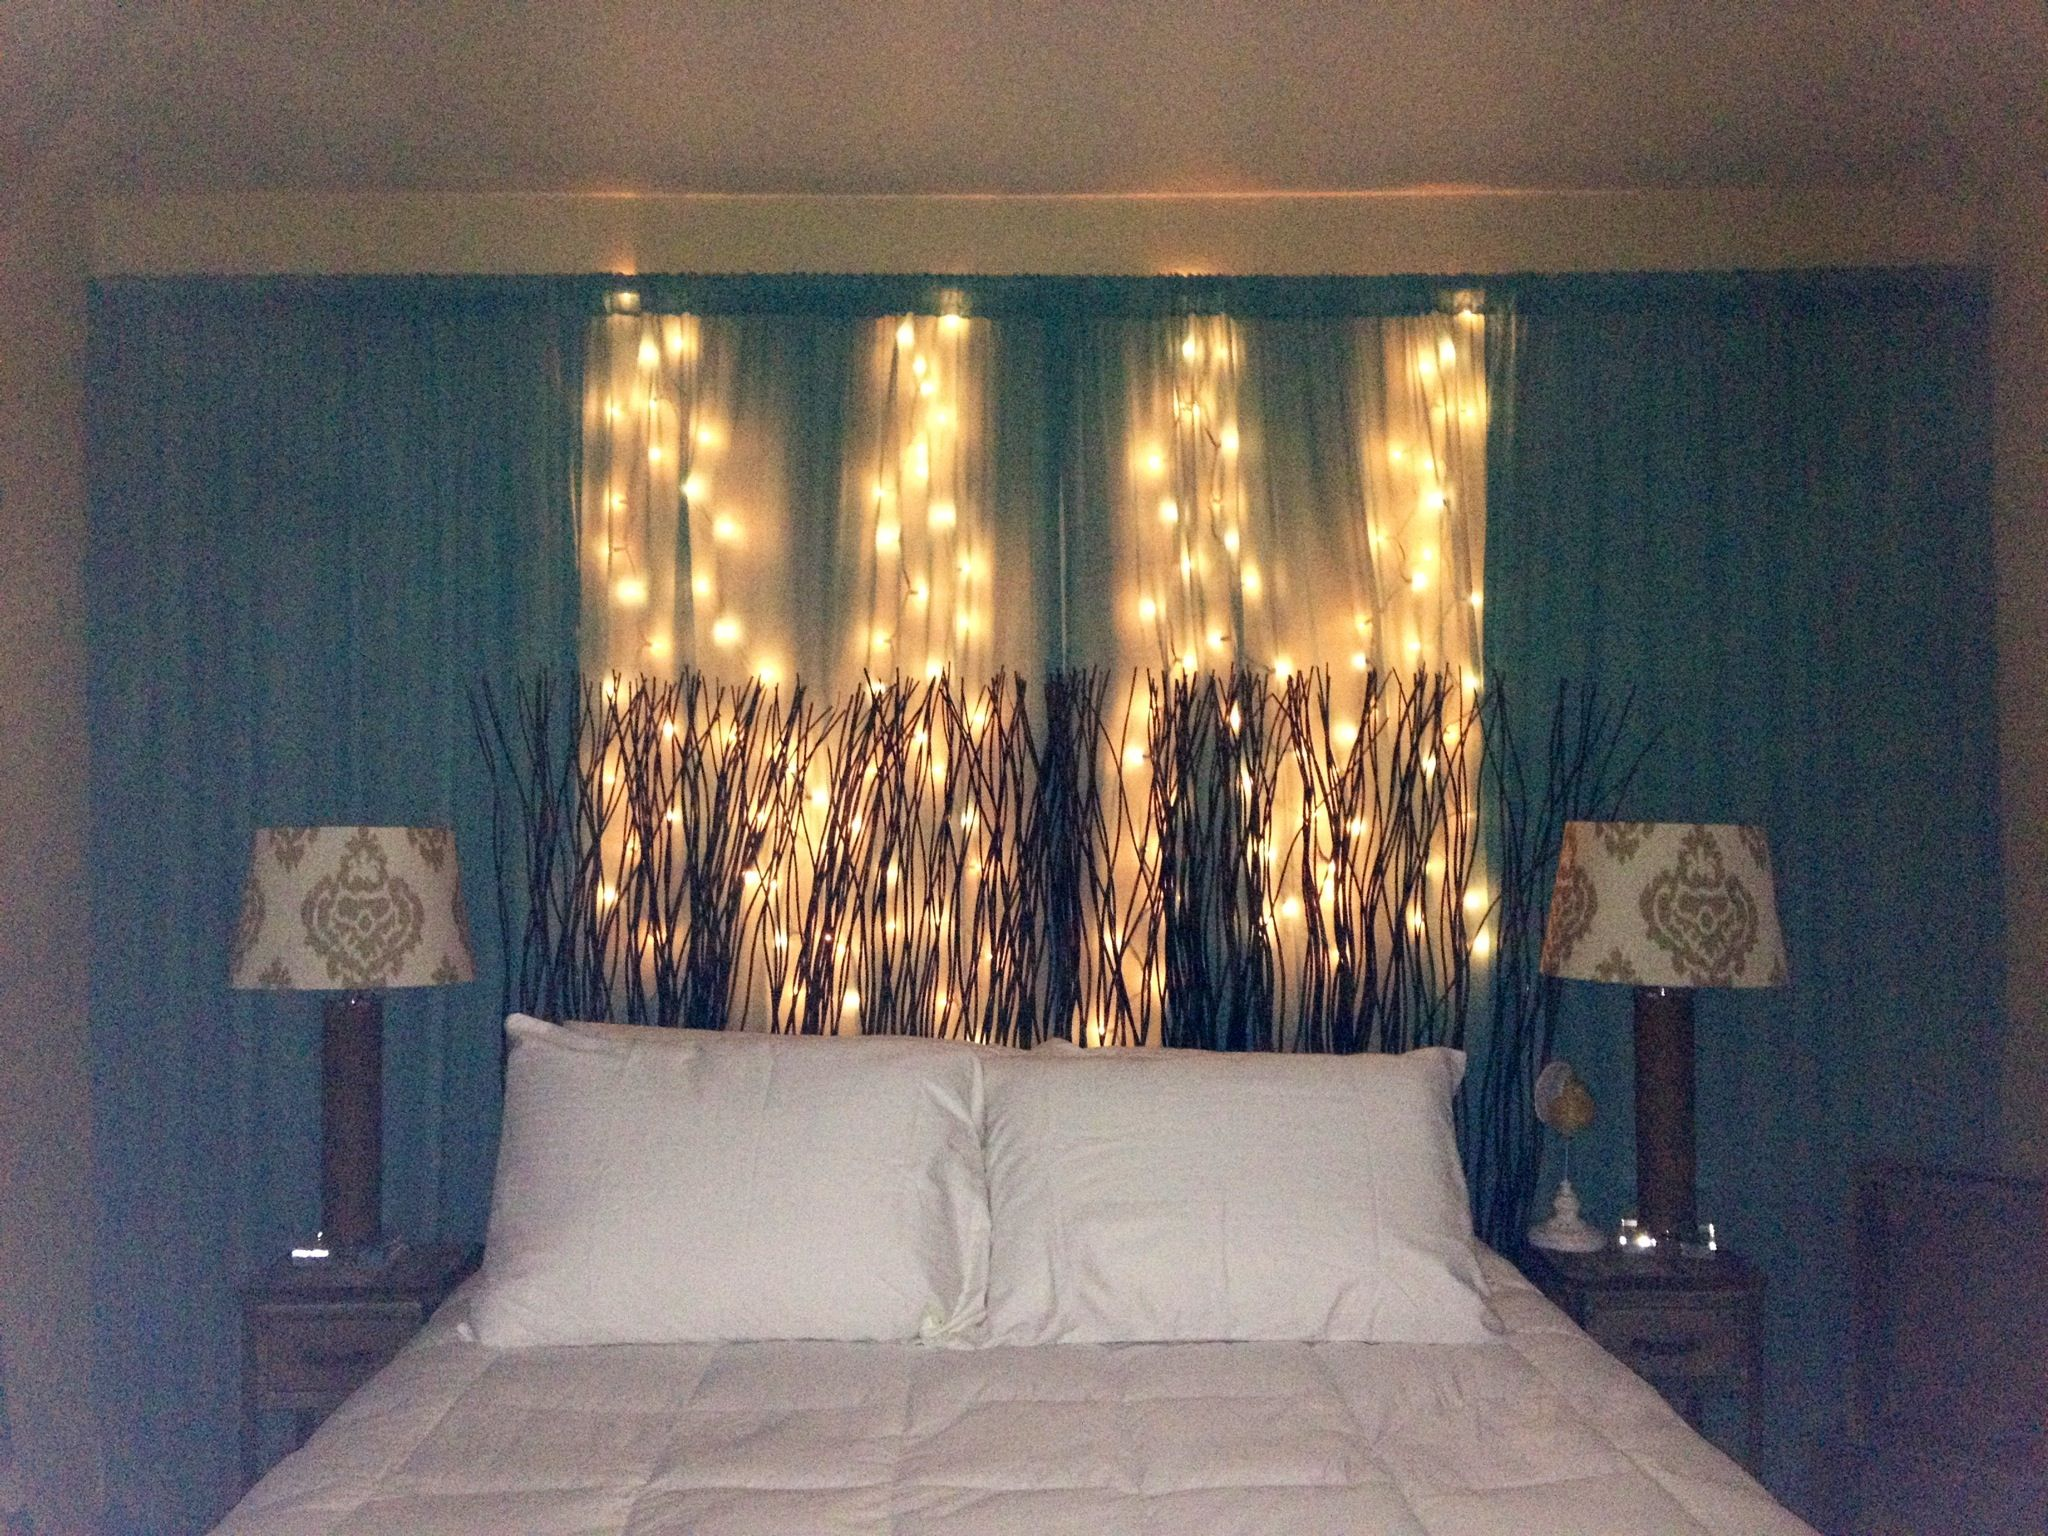 DIY Curtain & string lights behind headboard; on wall instead of windows.